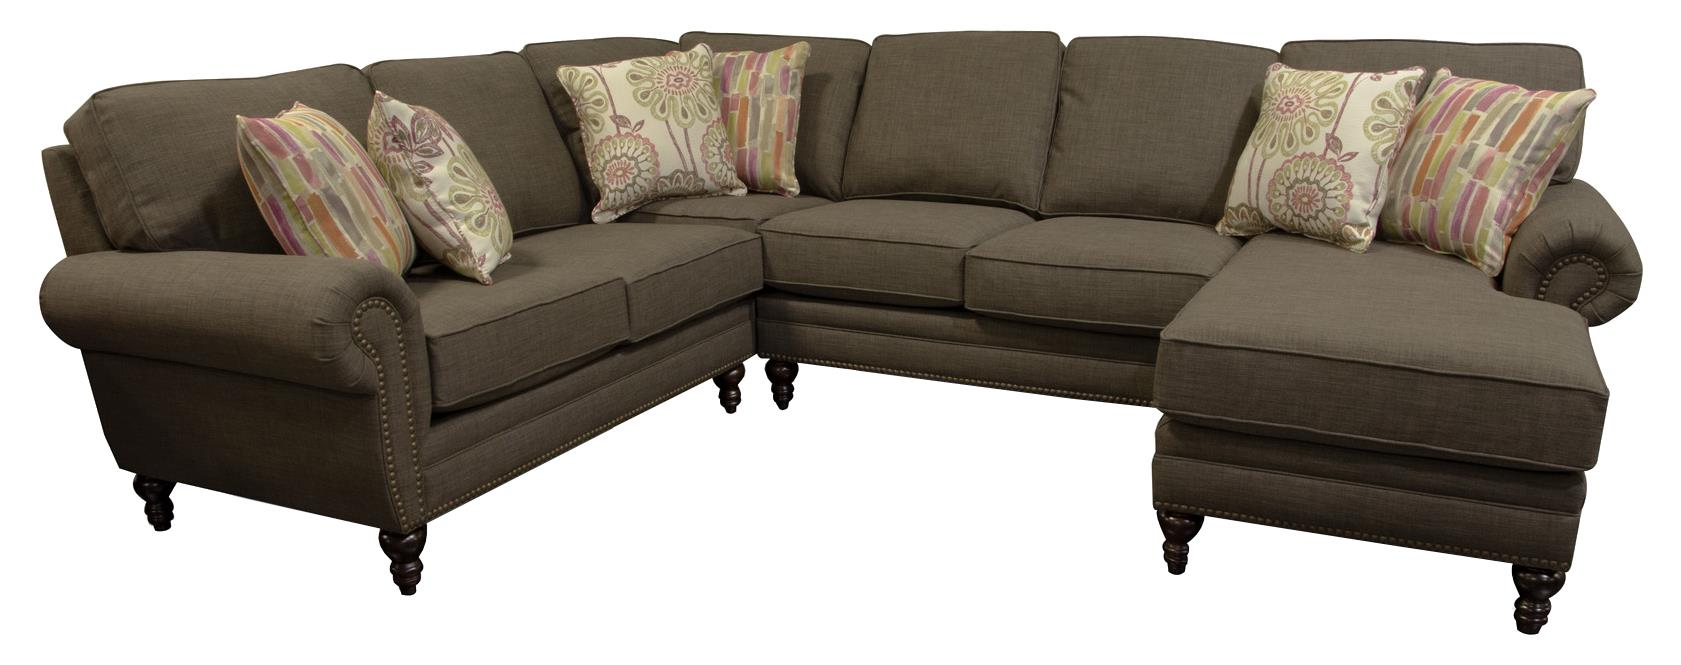 England Amix Five Seat Sectional Sofa